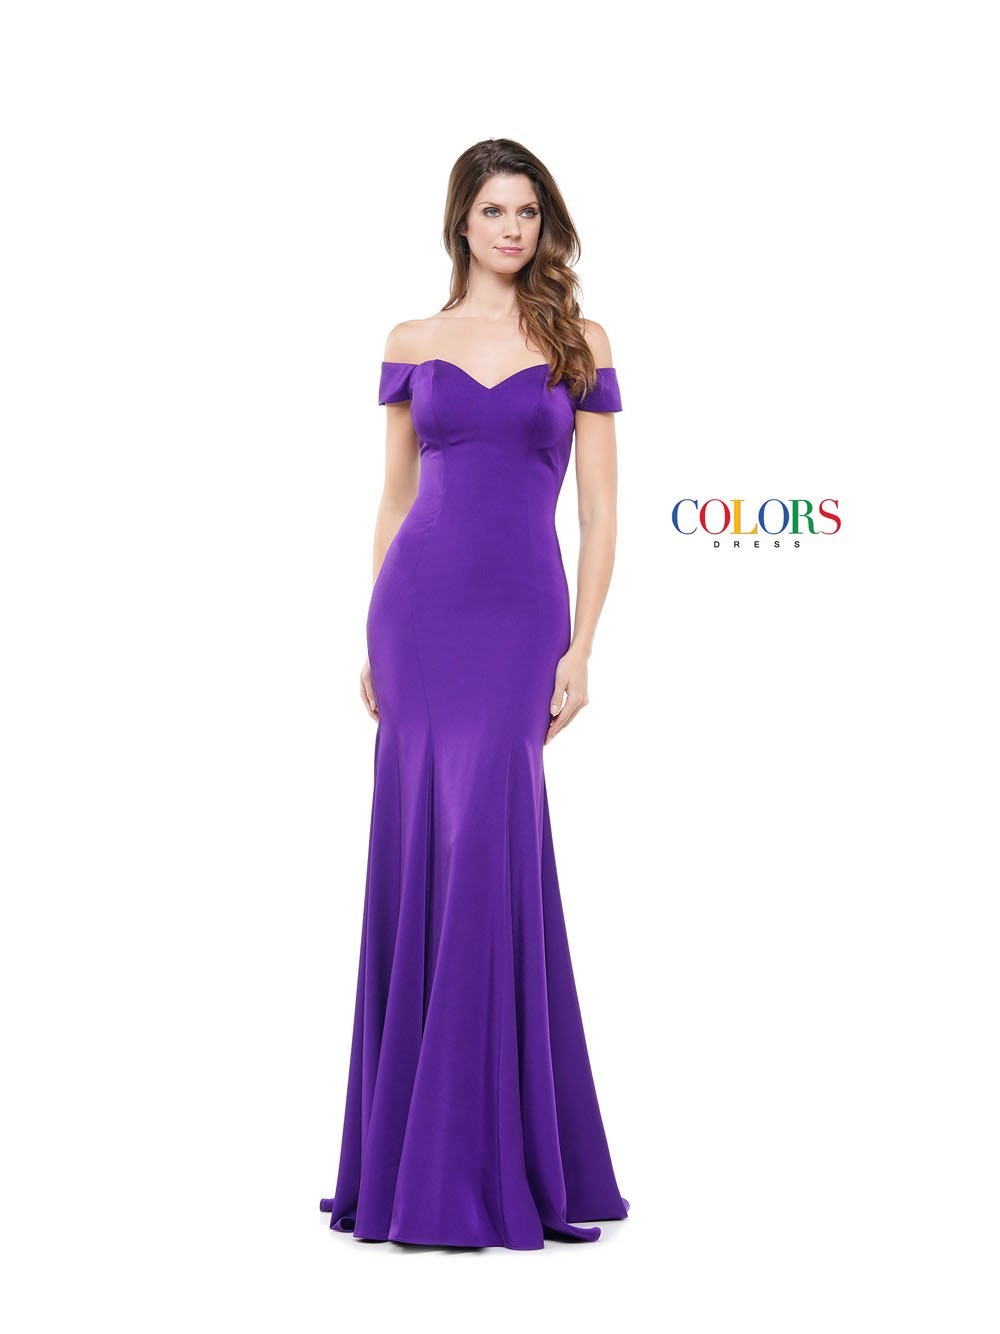 Colors Dress 1768 prom dress images.  Colors 1768 dresses are available in these colors: Black, Forest, Navy, Purple, Red, Dusty Rose, Royal, Wine.